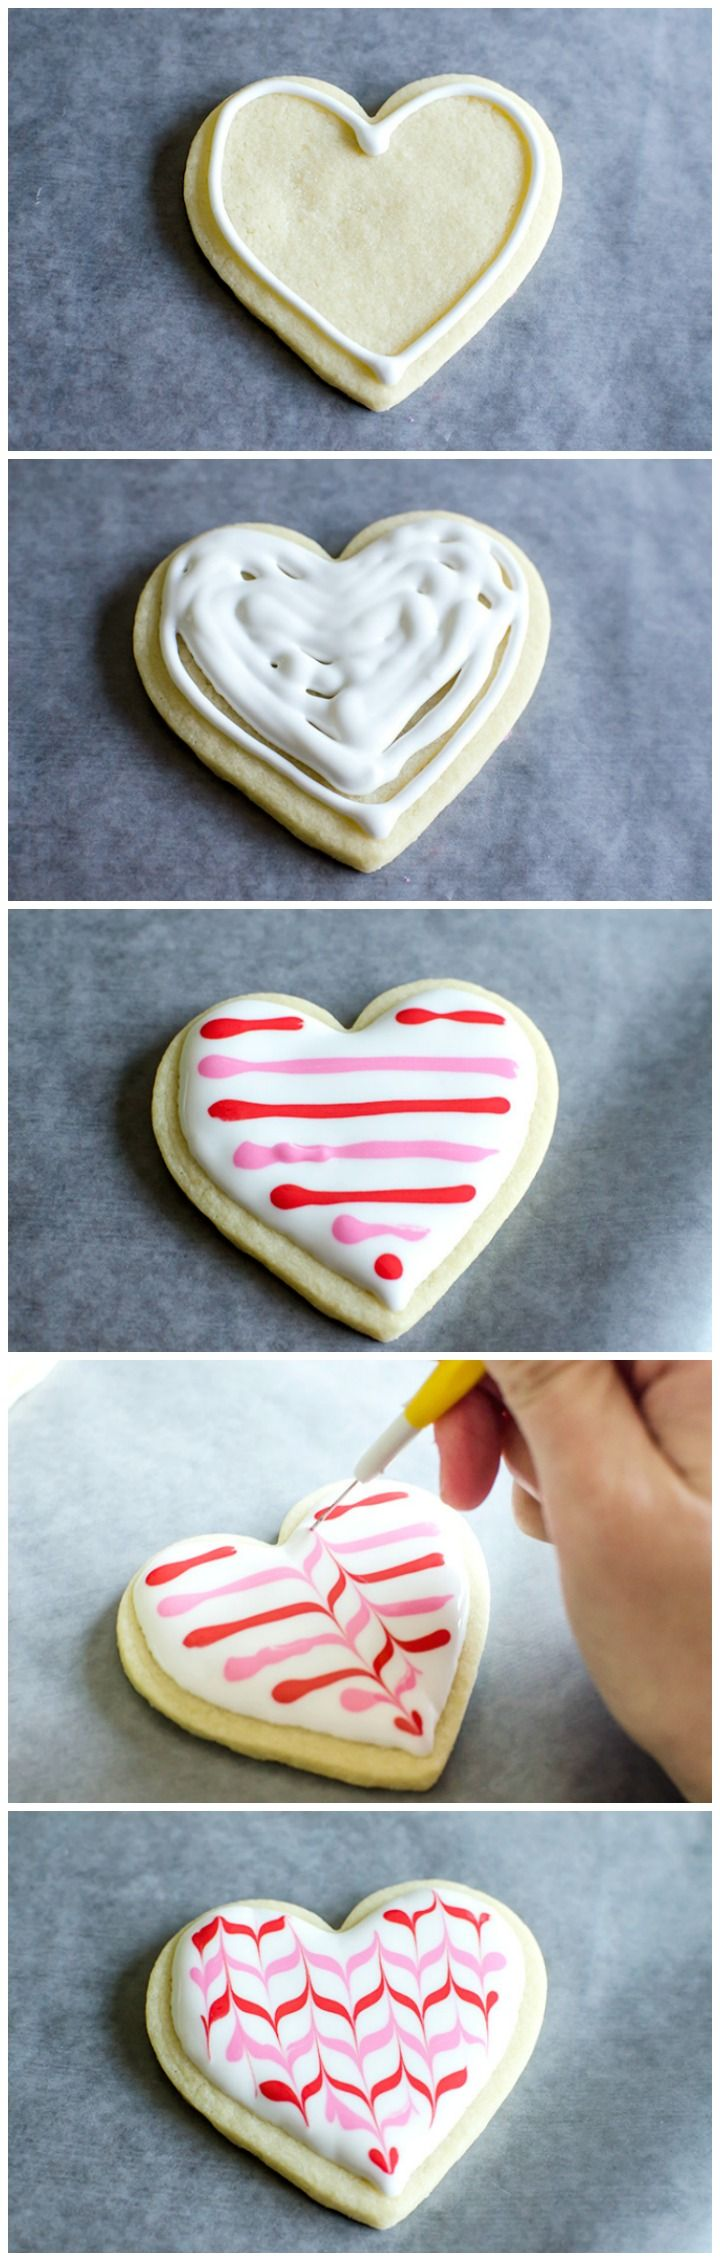 """Oh so cute - cookie bouquets for Valentine's Day with decorated heart shaped cookie pops. Plus a free """"Galentine's Day"""" printable tag!"""